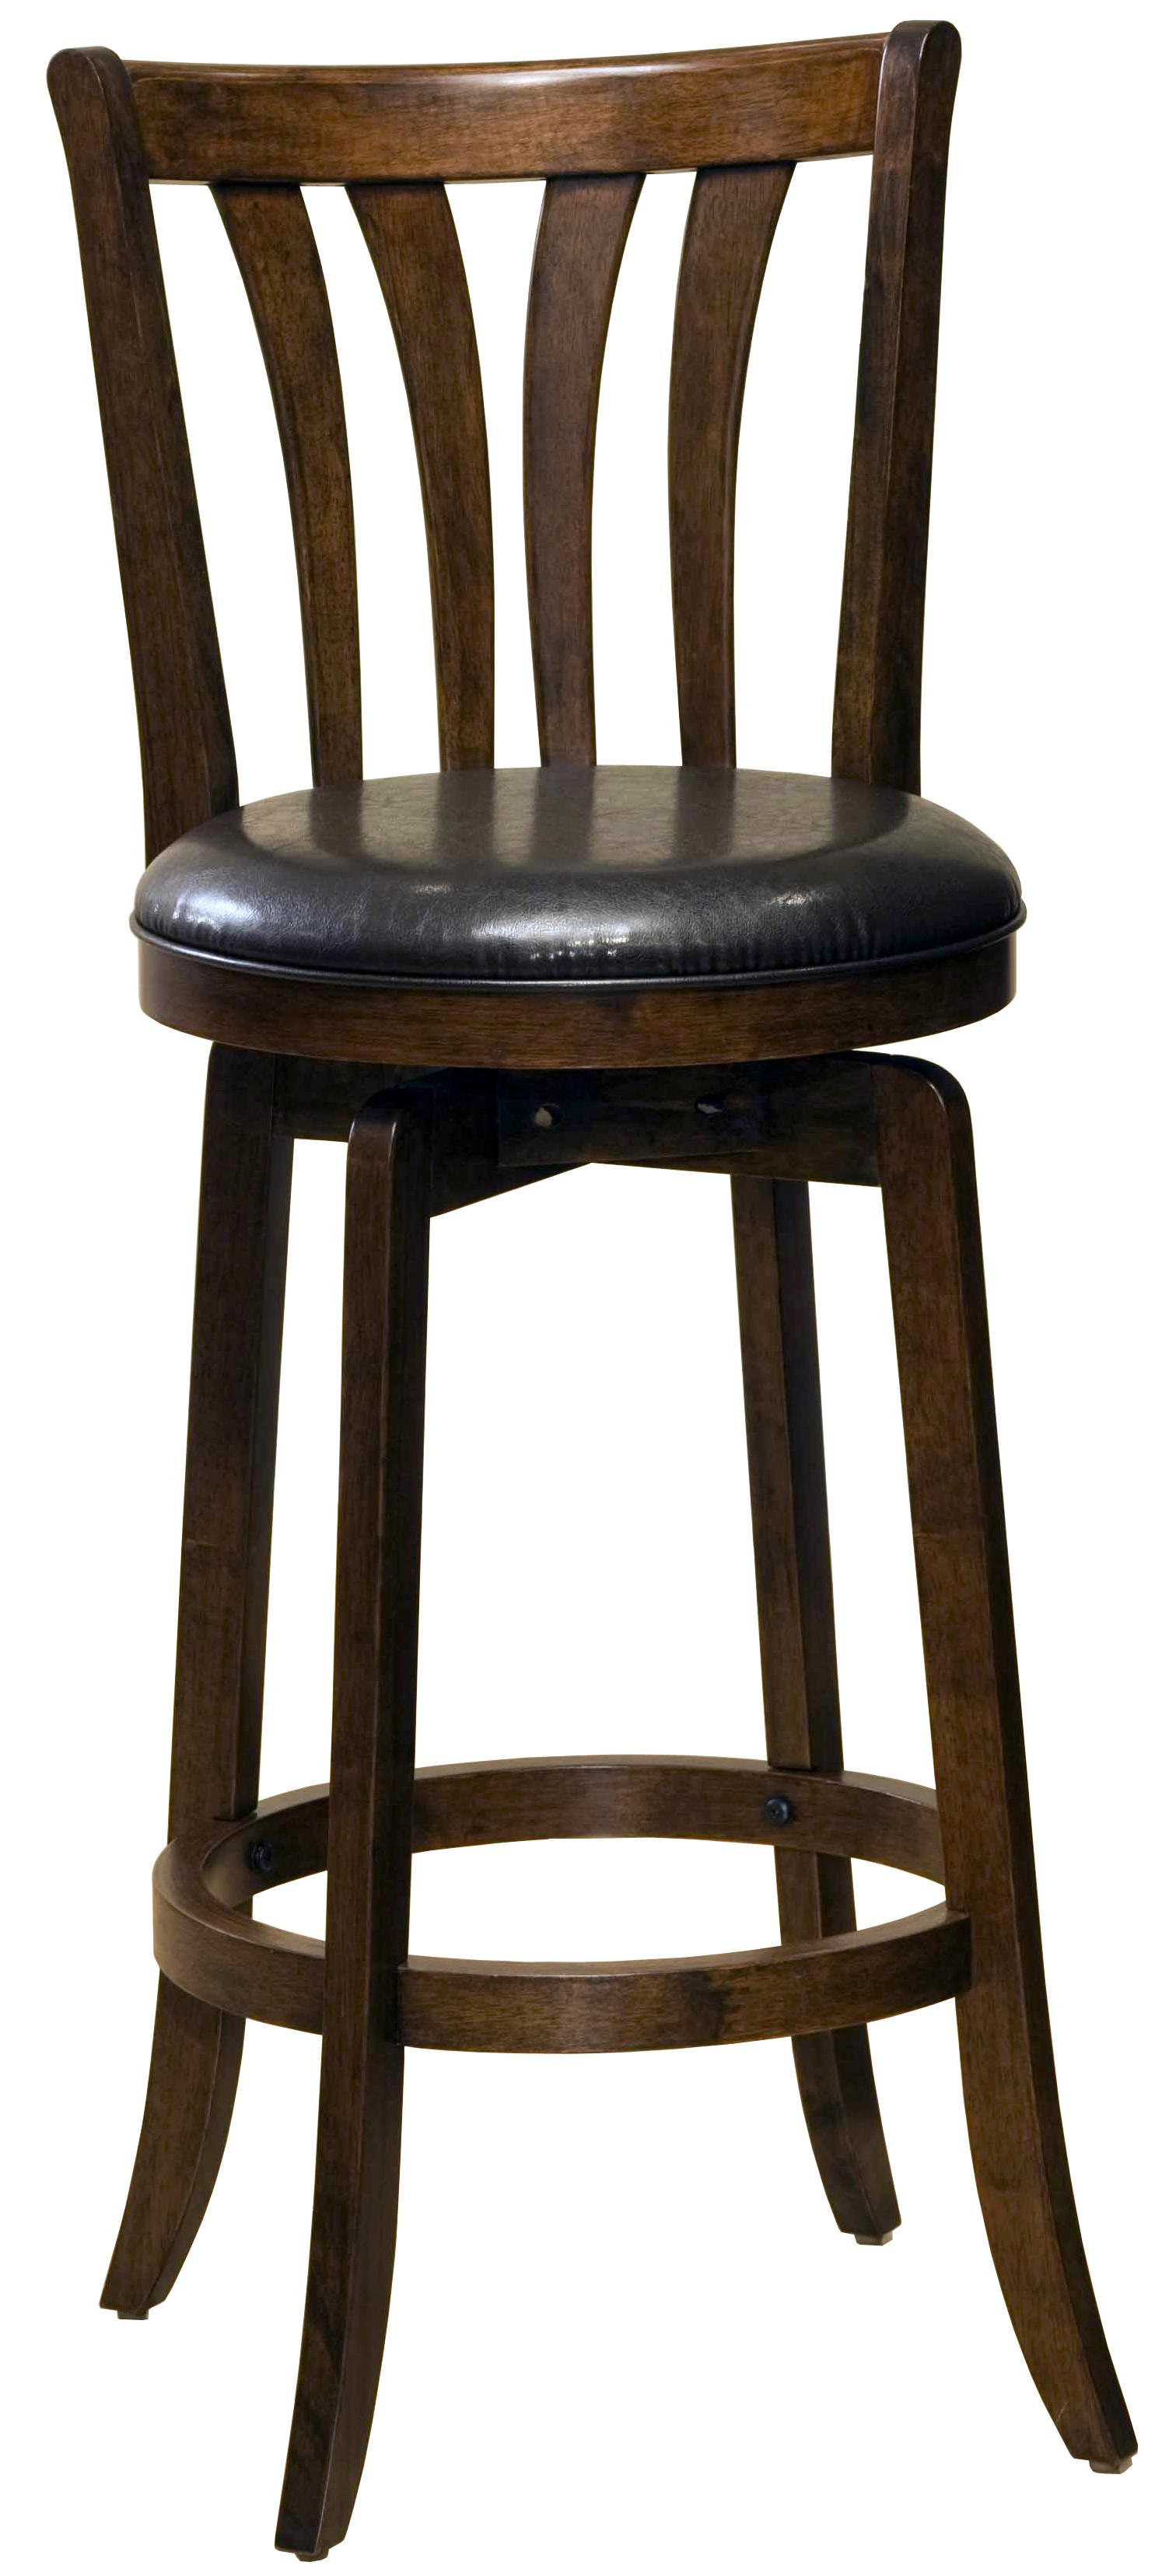 26 counter height savana swivel bar stool for Bar stool height